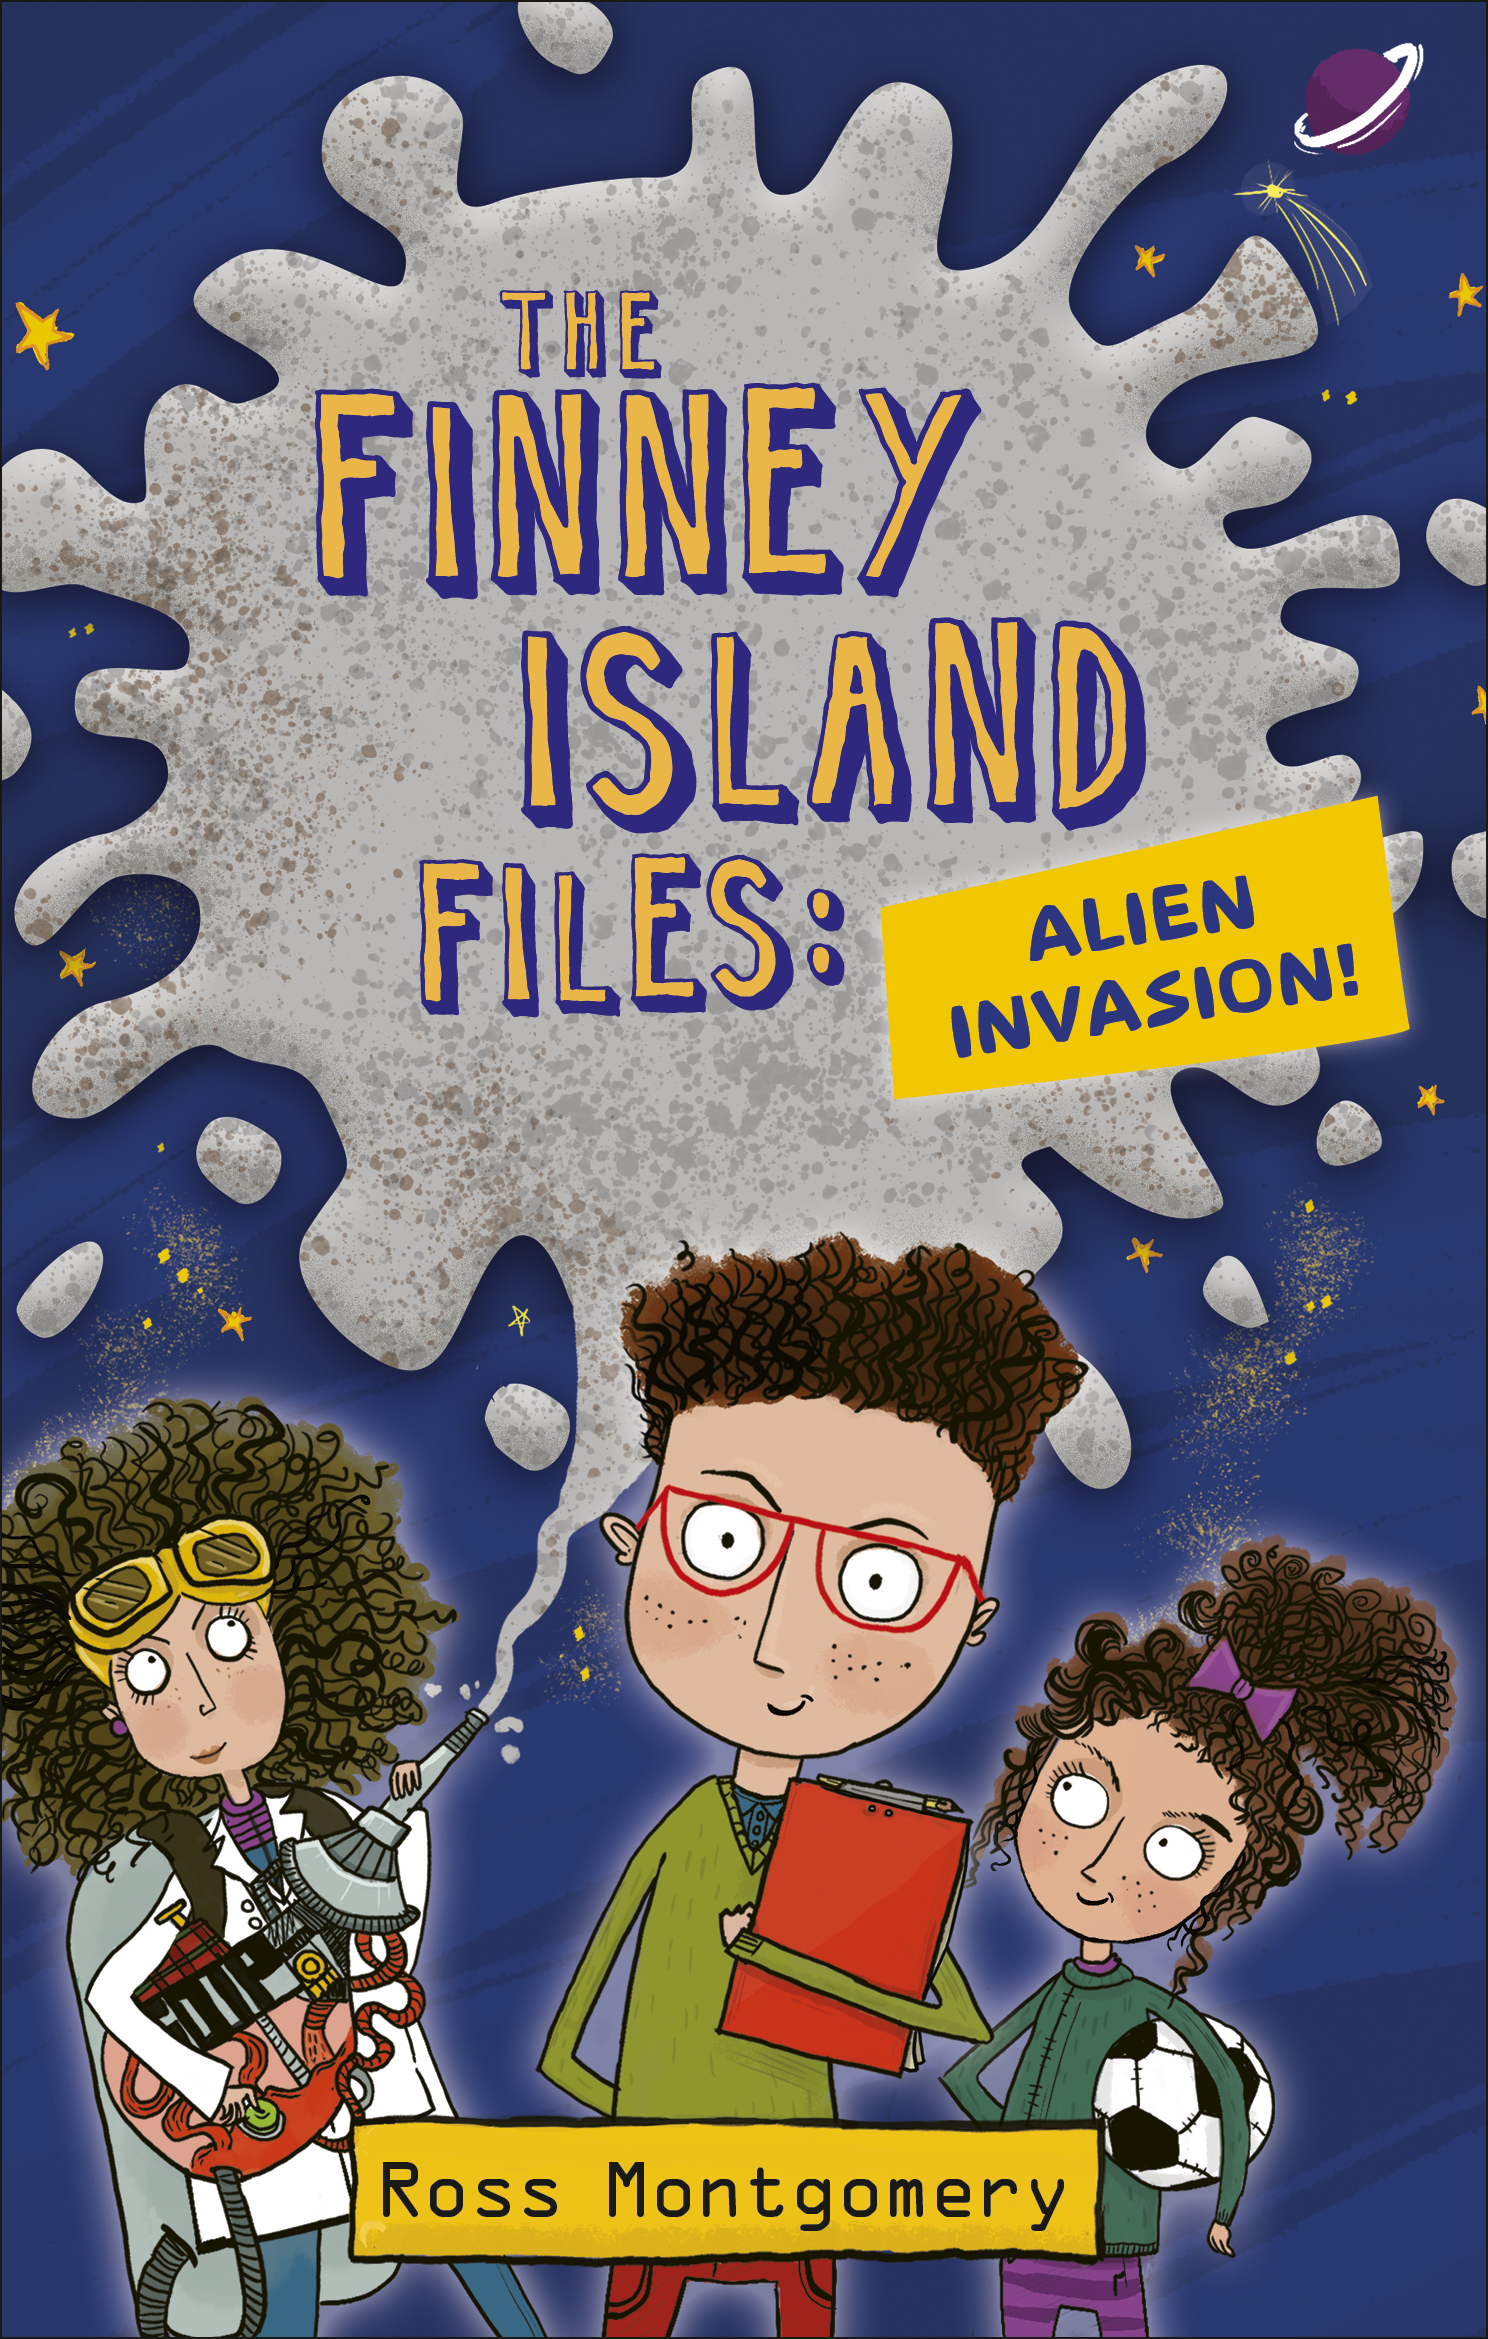 The Finney Island Files 1: Alien Invasion!